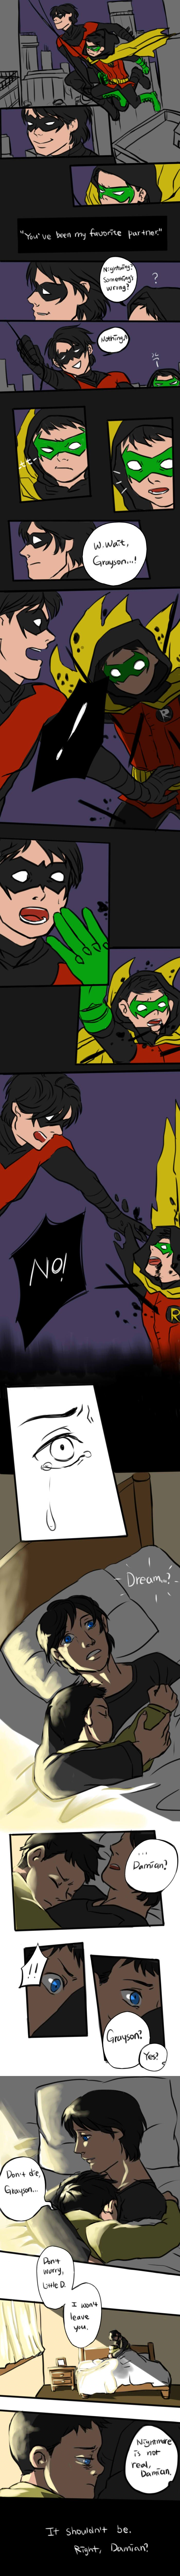 Dick and Damian wayne: nightmare see others of this series: arangyee.deviantart.com/galler… 한글판은 앞으로 여기에 올&#...